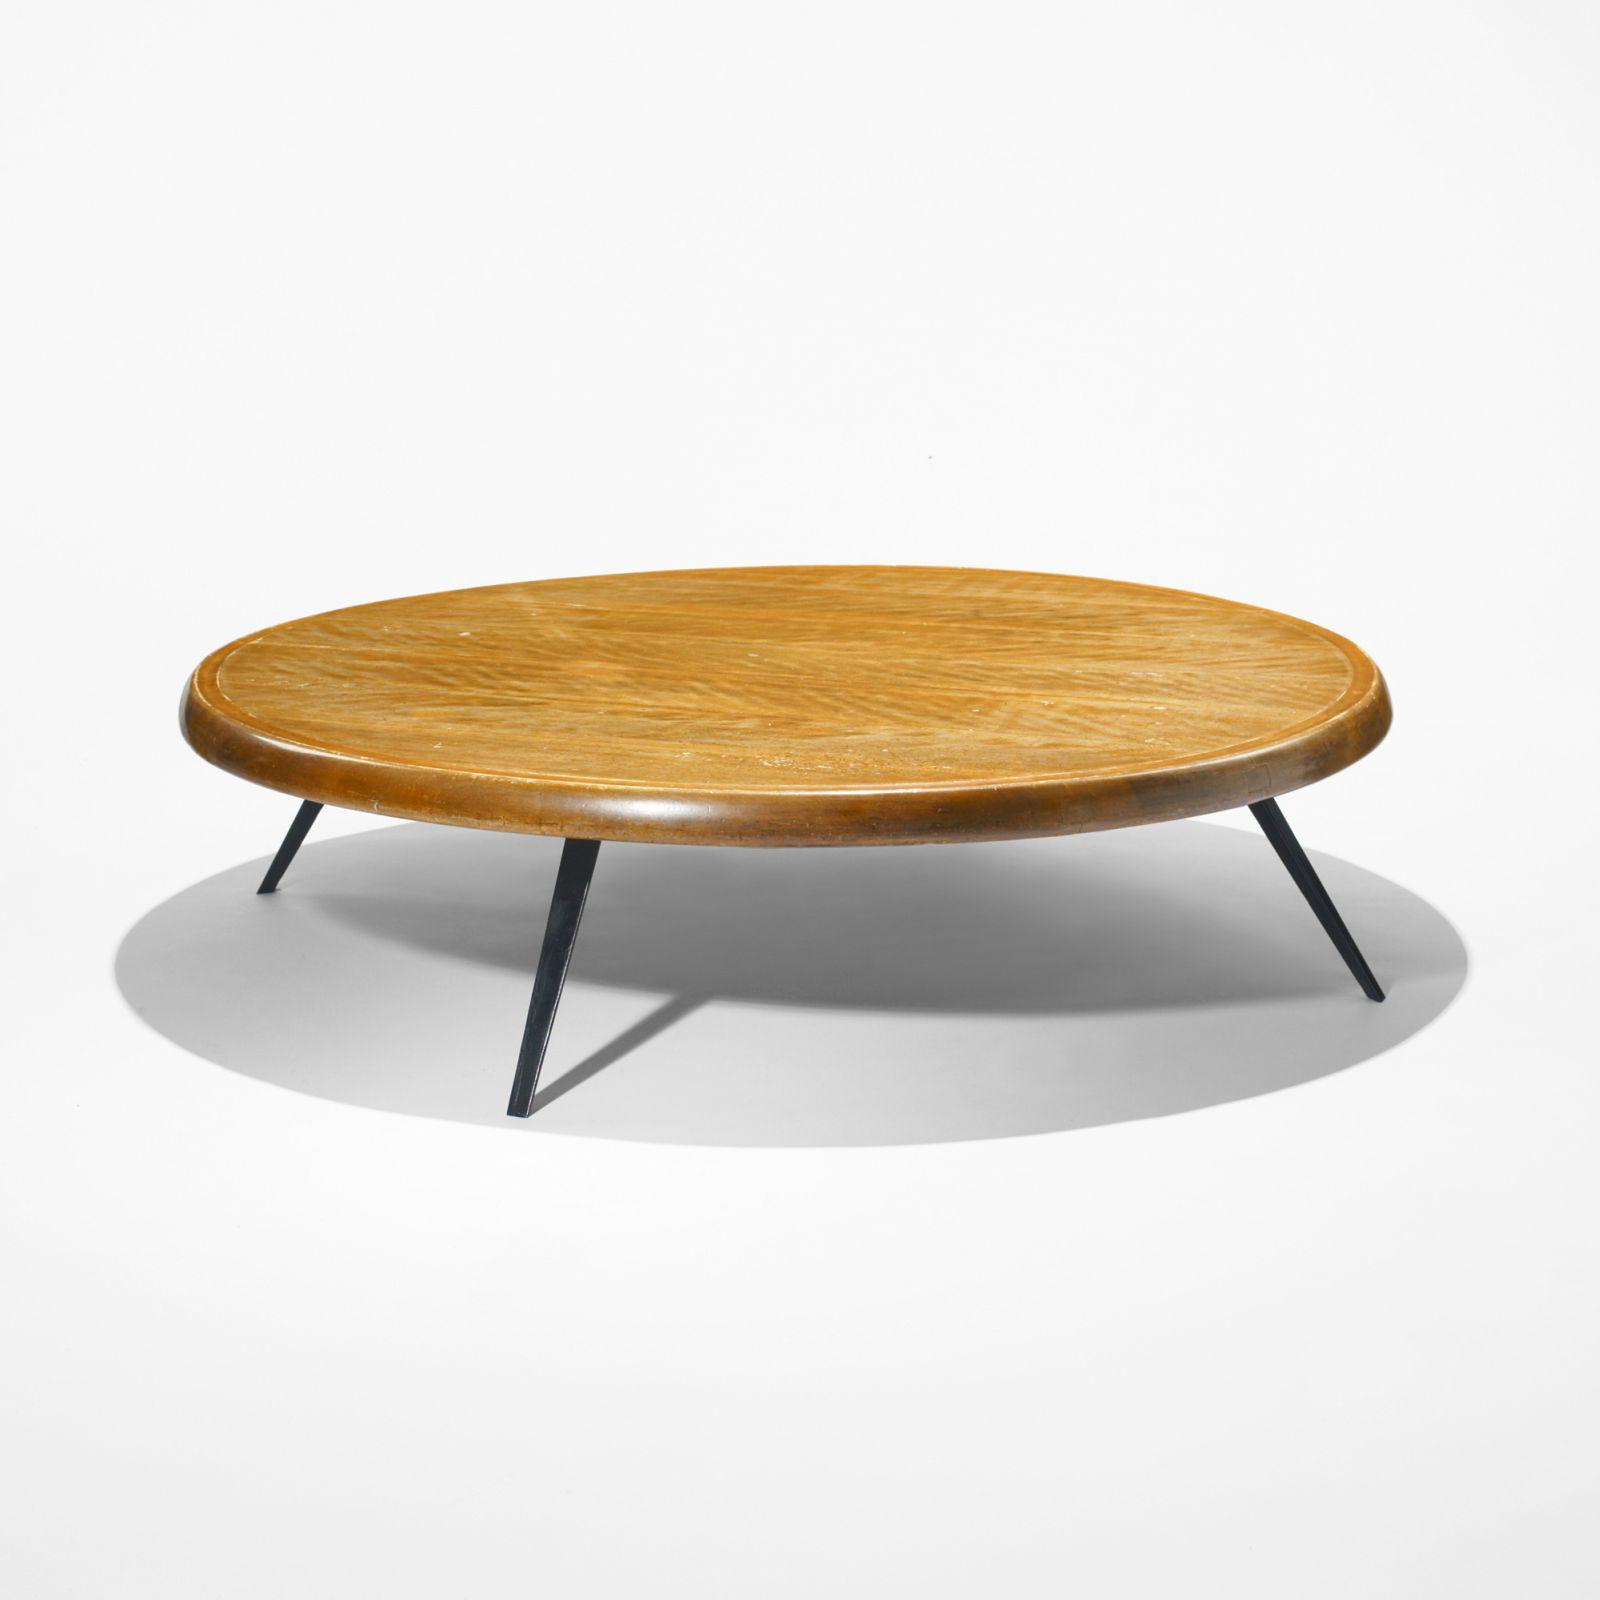 Charlotte perriand coffee table - Charlotte perriand table basse ...